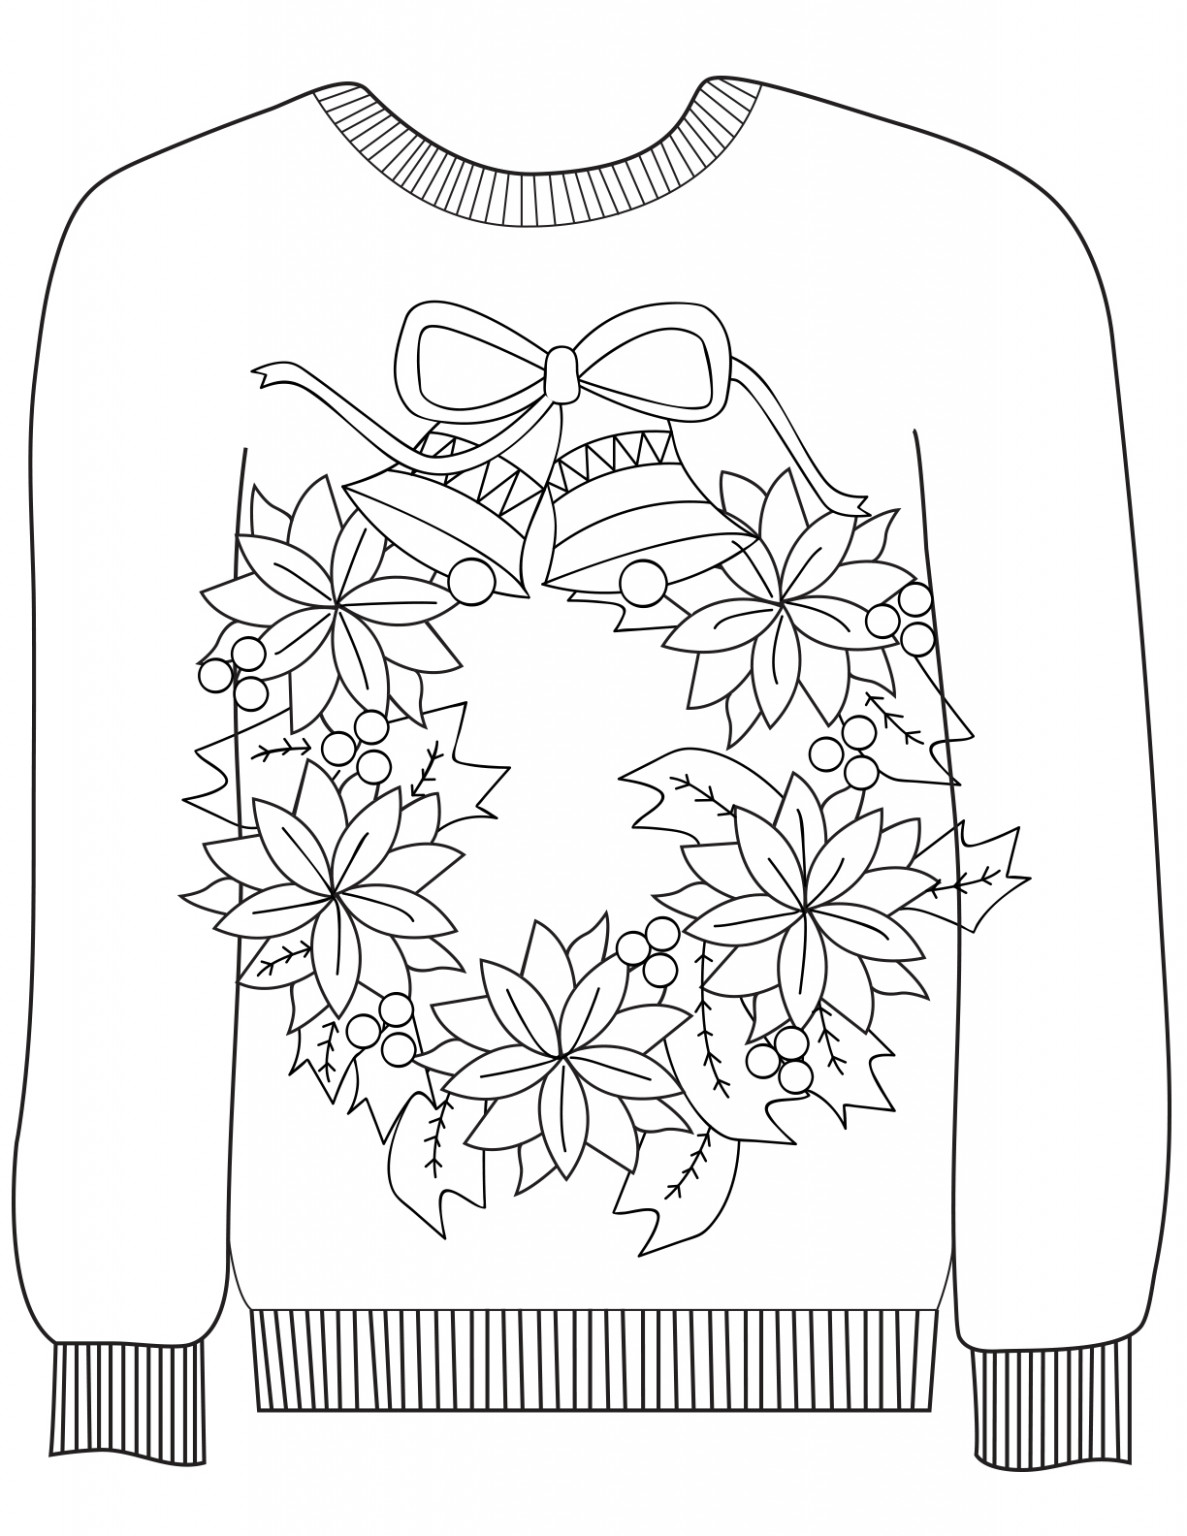 Coloring Sheets – Ragstock – Ugly Christmas Sweater Coloring Pages